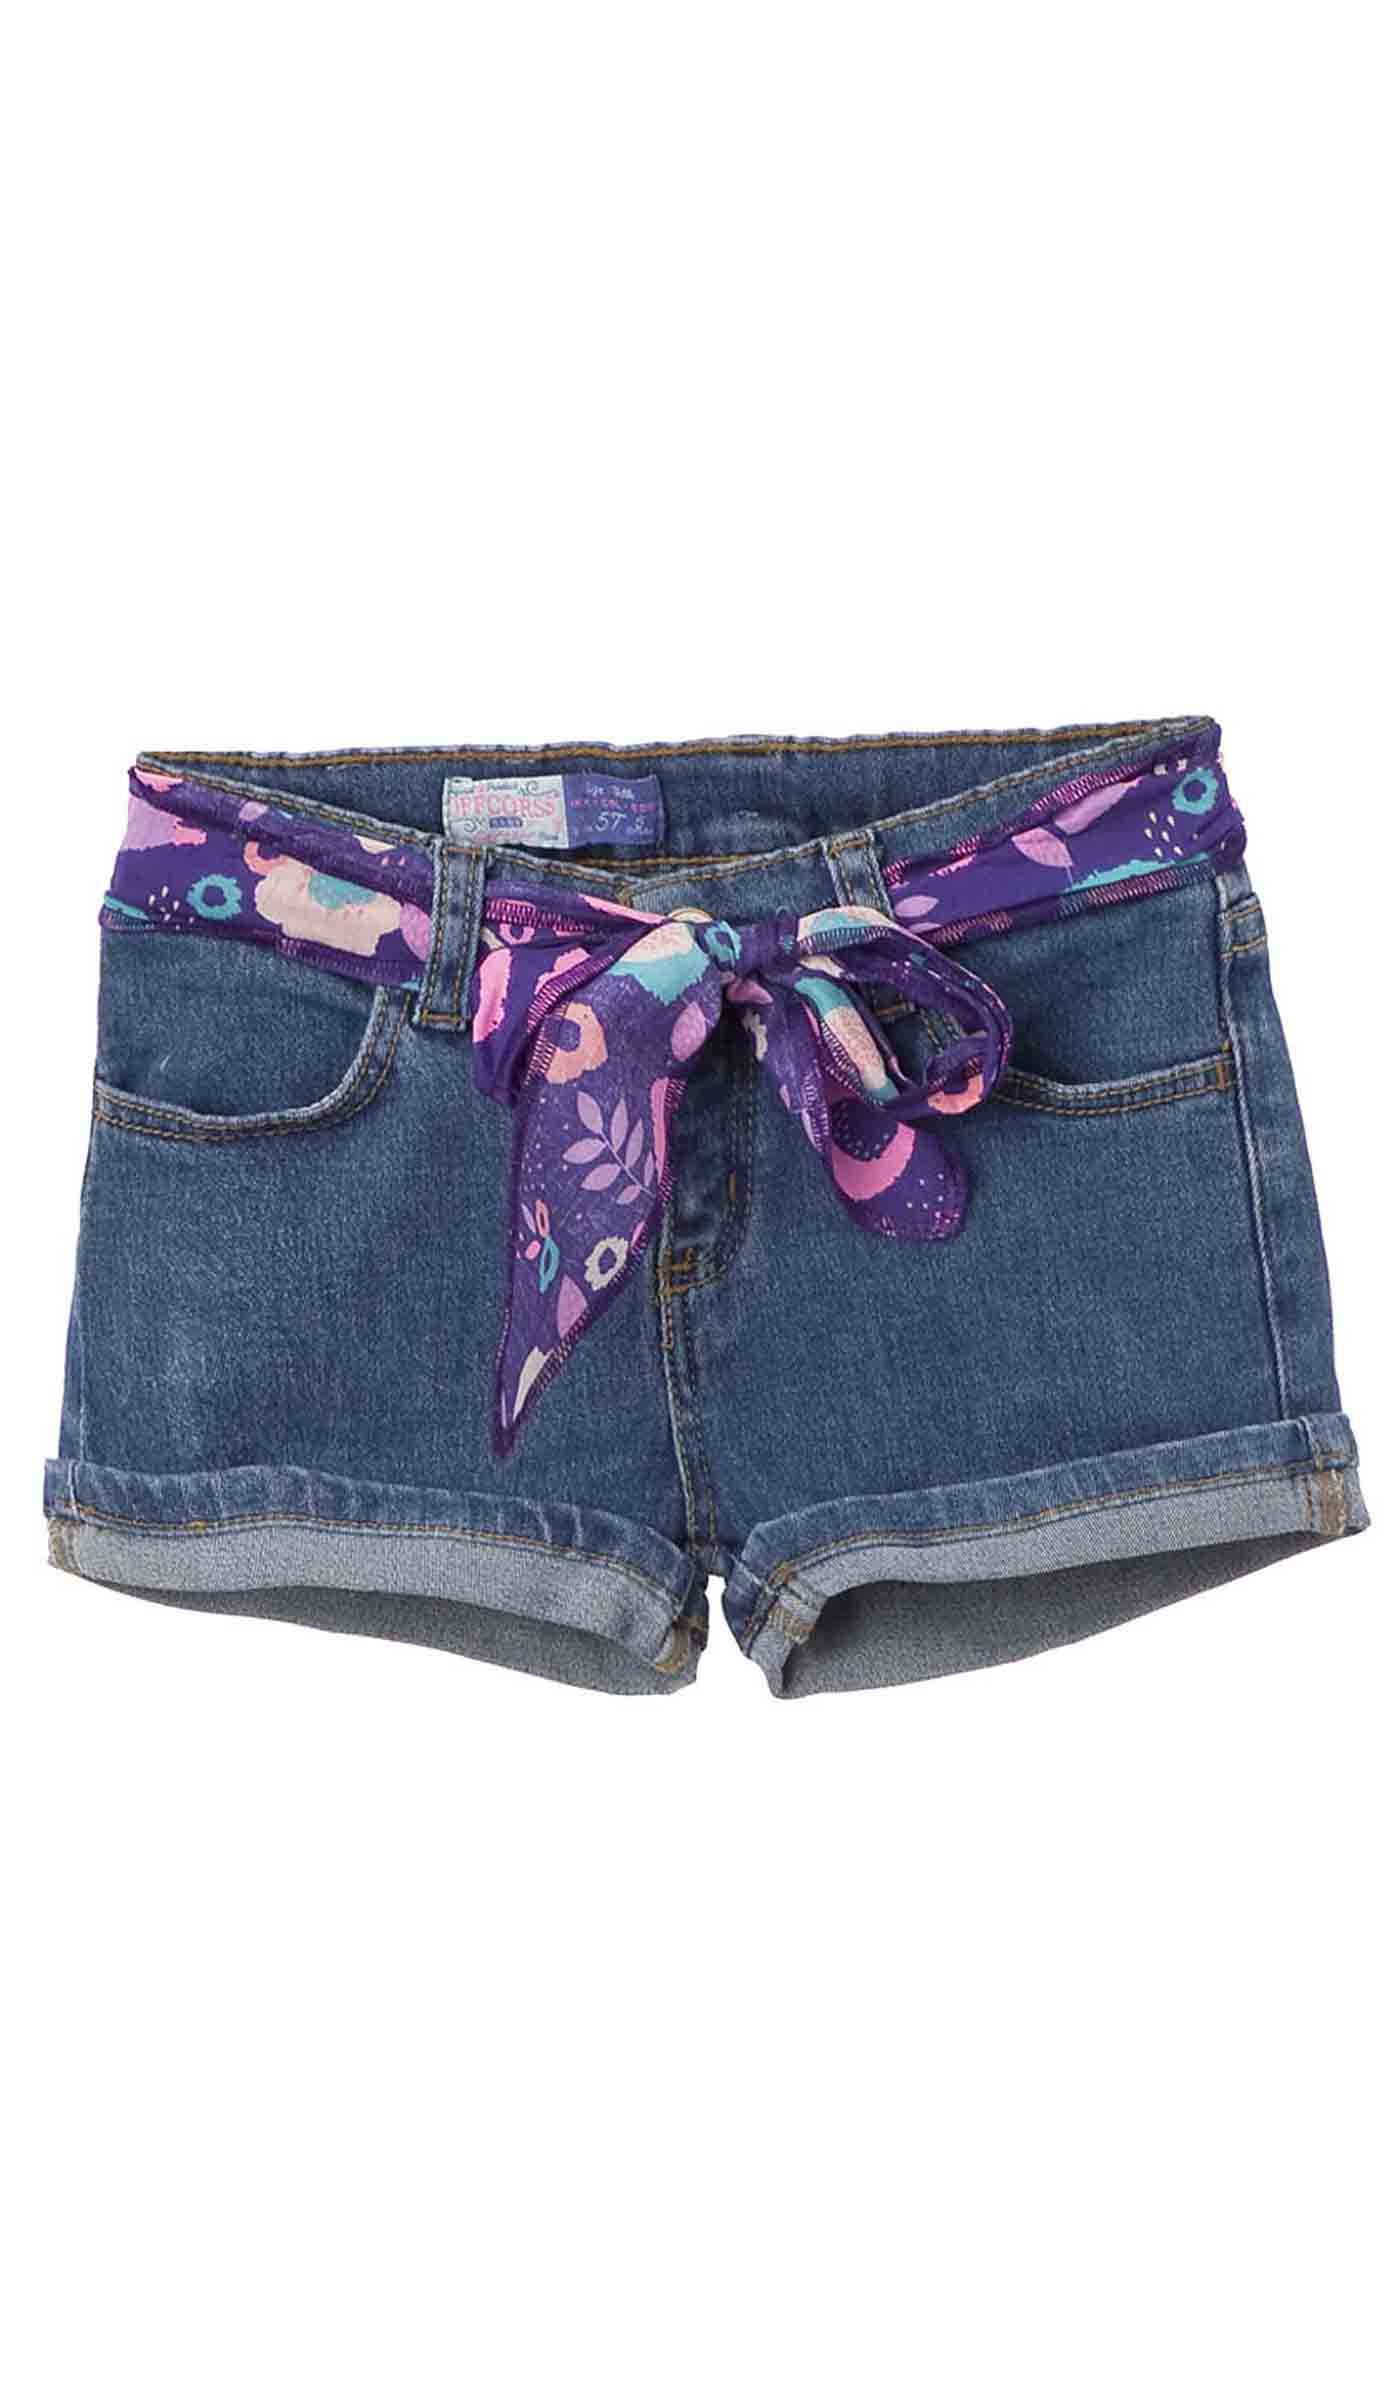 OFFCORSS Toddler Baby Girl Kid Prime Cute Stretchy Slim Loose Denim Jeans Colored Play Shorts for Summer Ropa Casual de Niña para Verano Blue 2T